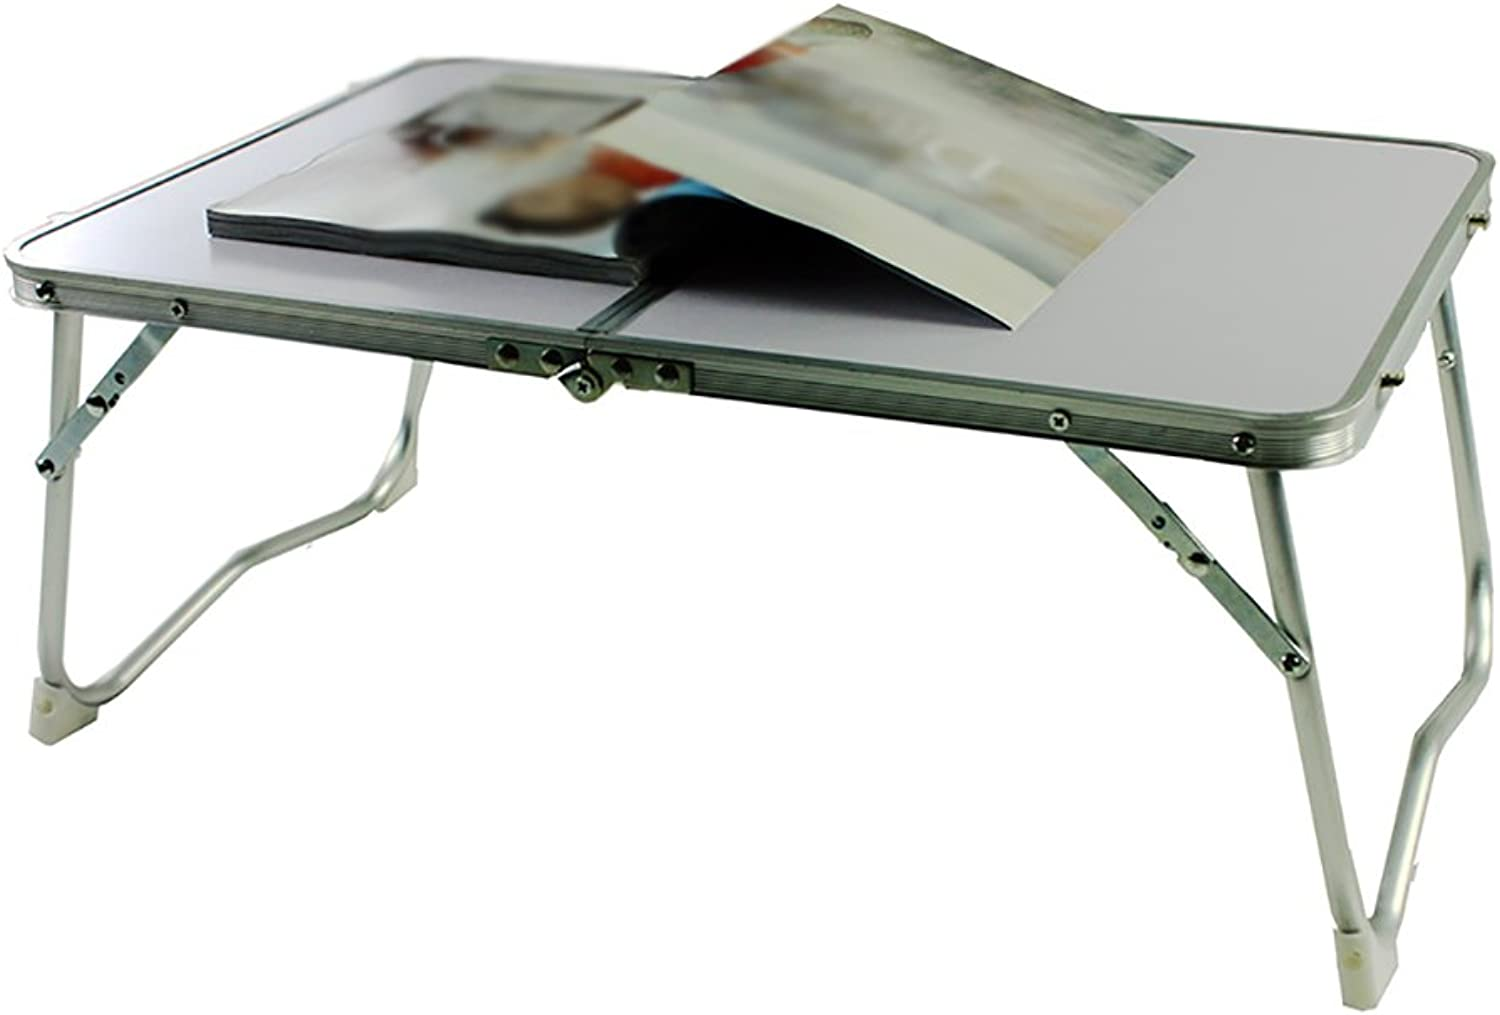 HAIPENG Bed Computer Desk Dorm Room Laptop Tables Folding Table Study Tables bluee and White (color   2 , Size   LWH 61  41  28.5cm)